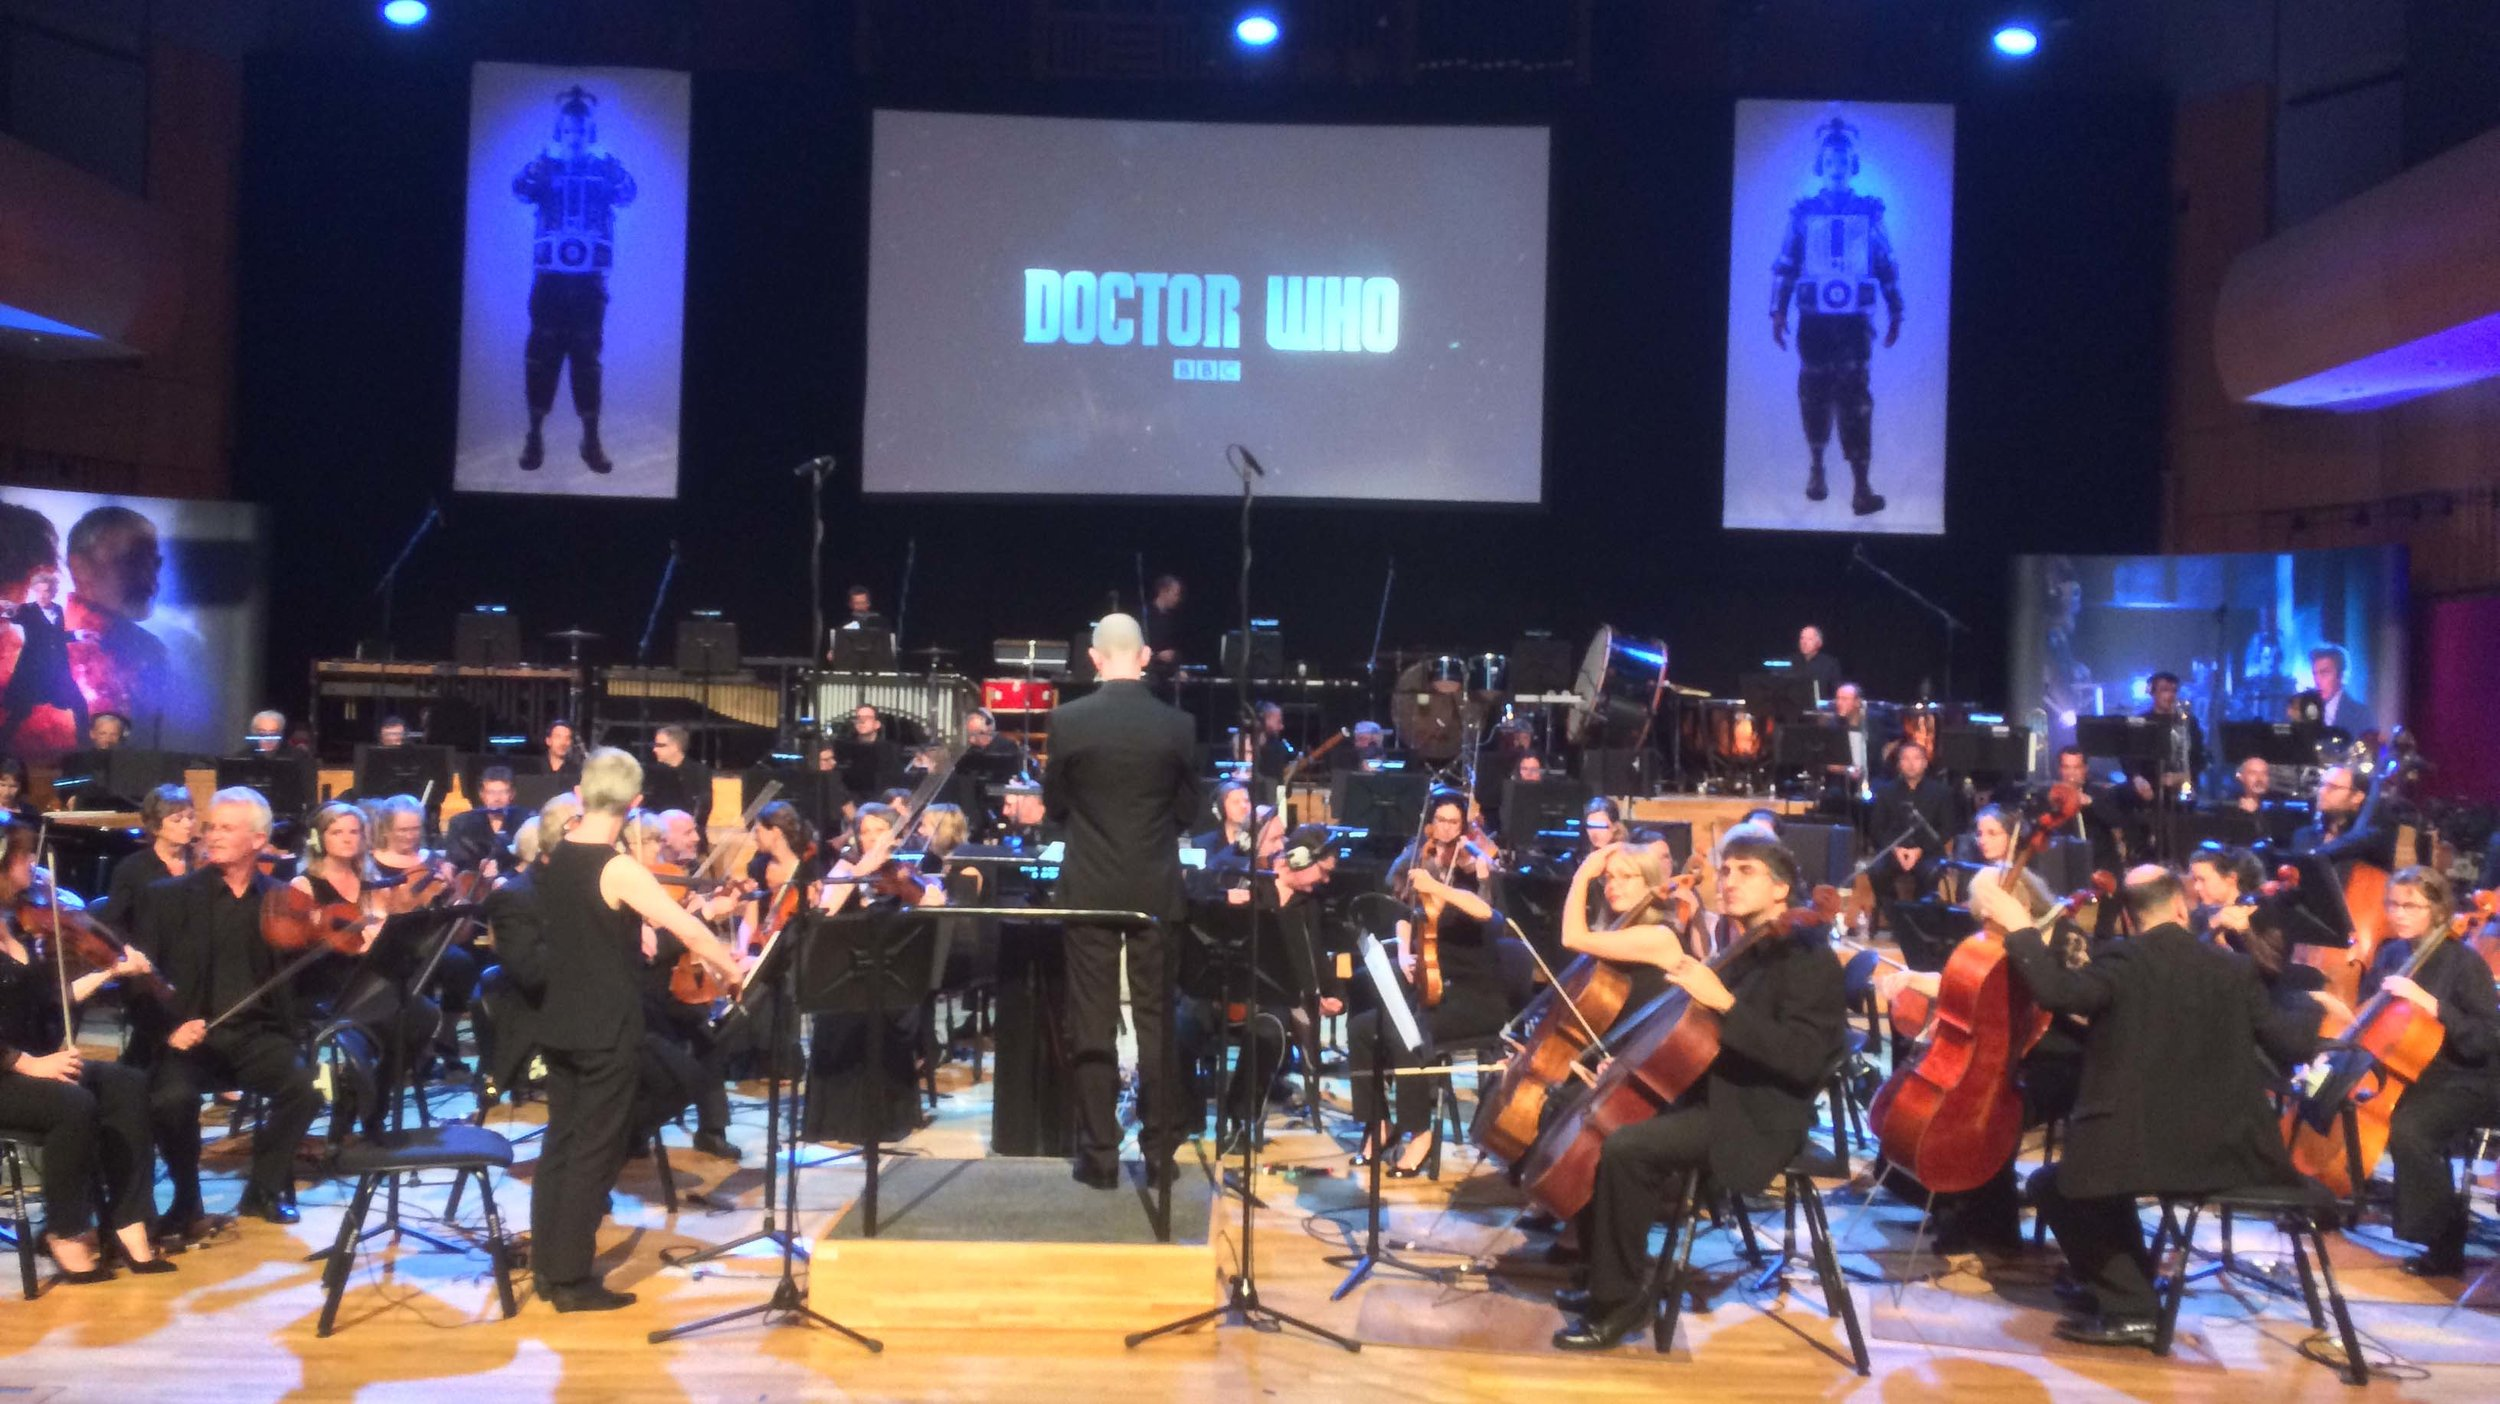 BBC National Orchestra of Wales performed live music alongside the Doctor Who episode World Enough And Time at TDoctor Who - The Finale Countdown inWales Millennium Centre's Hoddinott Hall